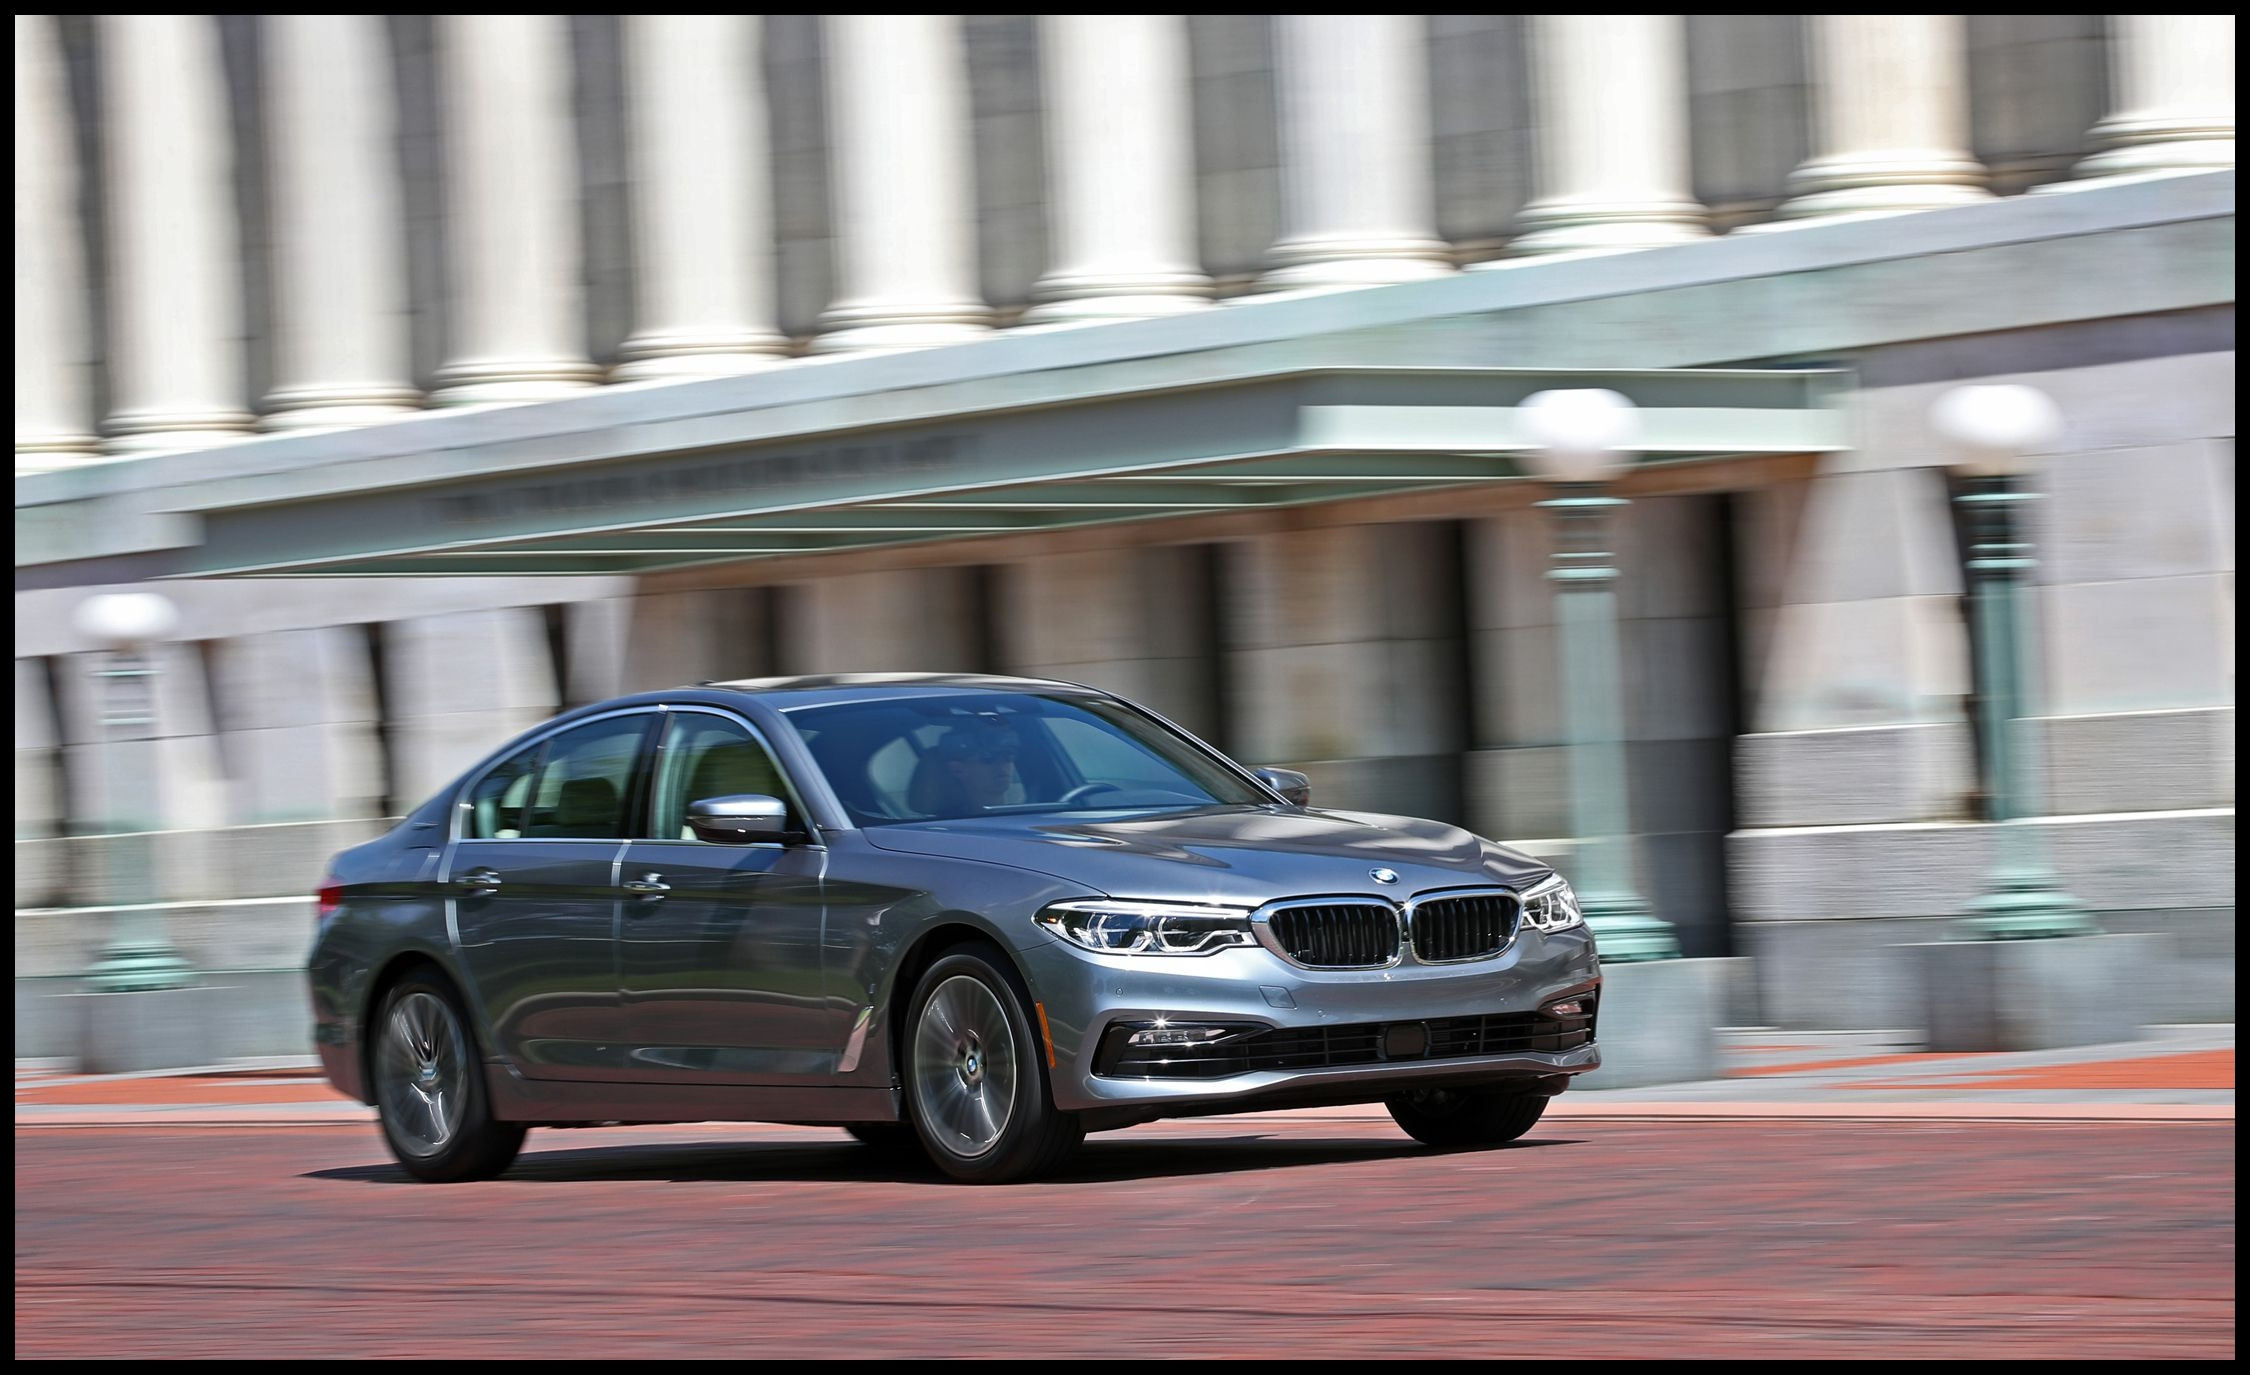 2019 Audi Driver assistance Package Best 2018 Bmw 5 Series Safety and Driver assistance Review